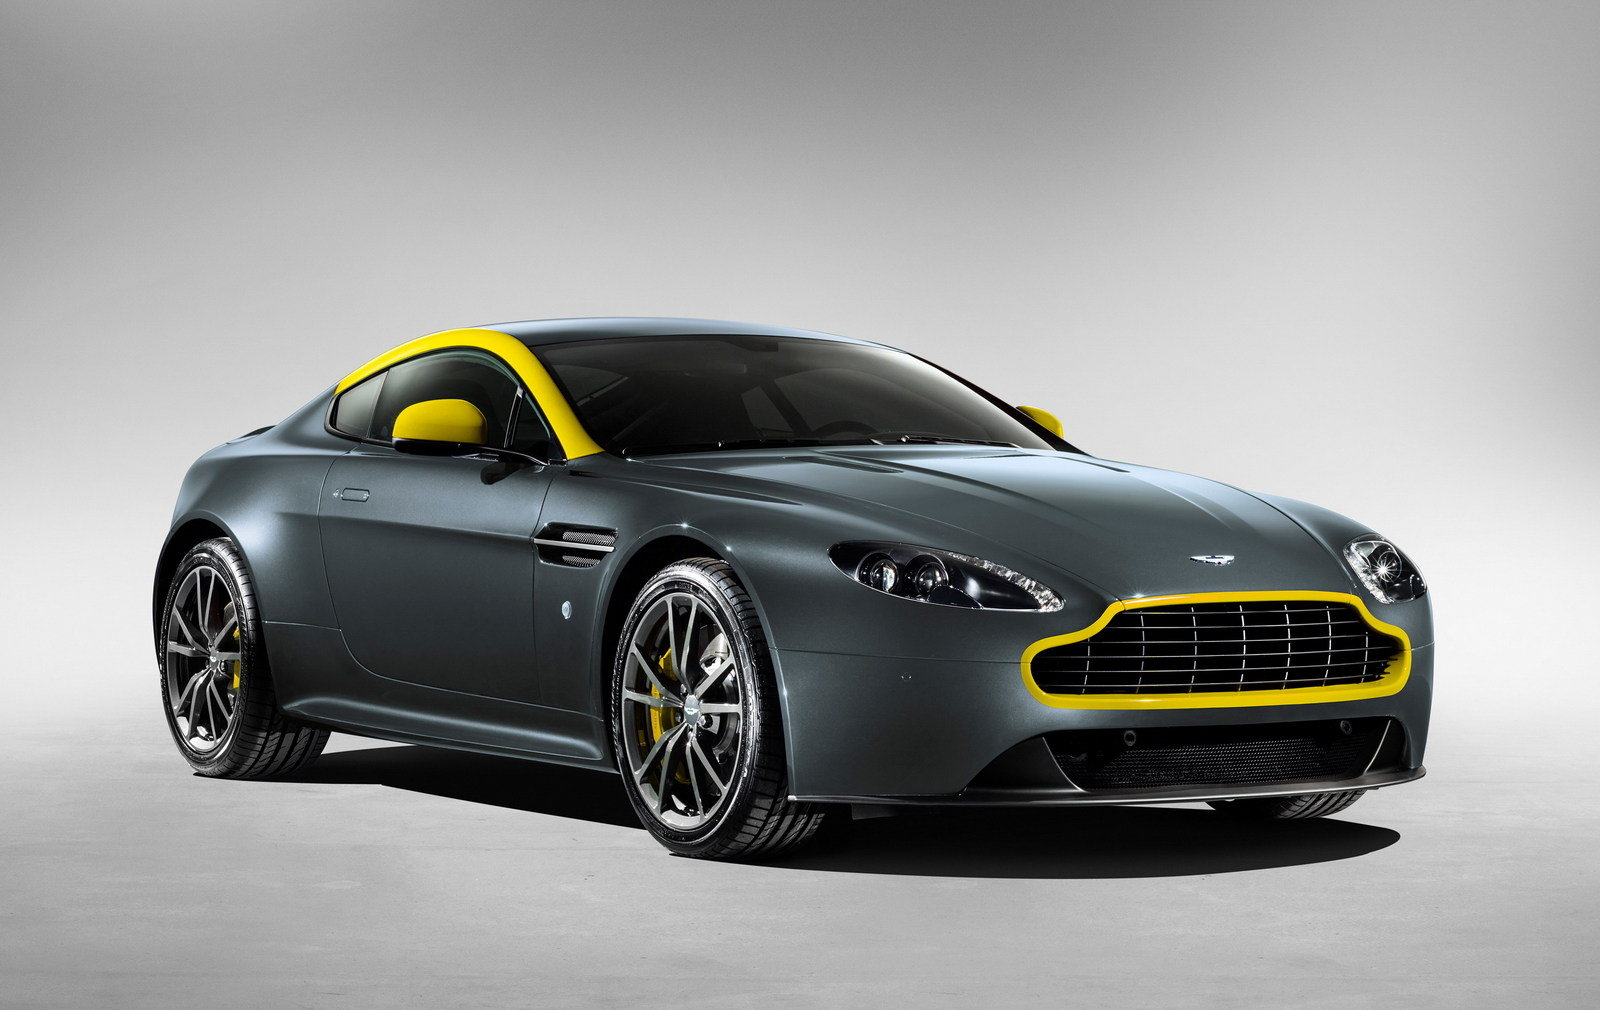 2015 aston martin v8 vantage n430 review top speed. Black Bedroom Furniture Sets. Home Design Ideas